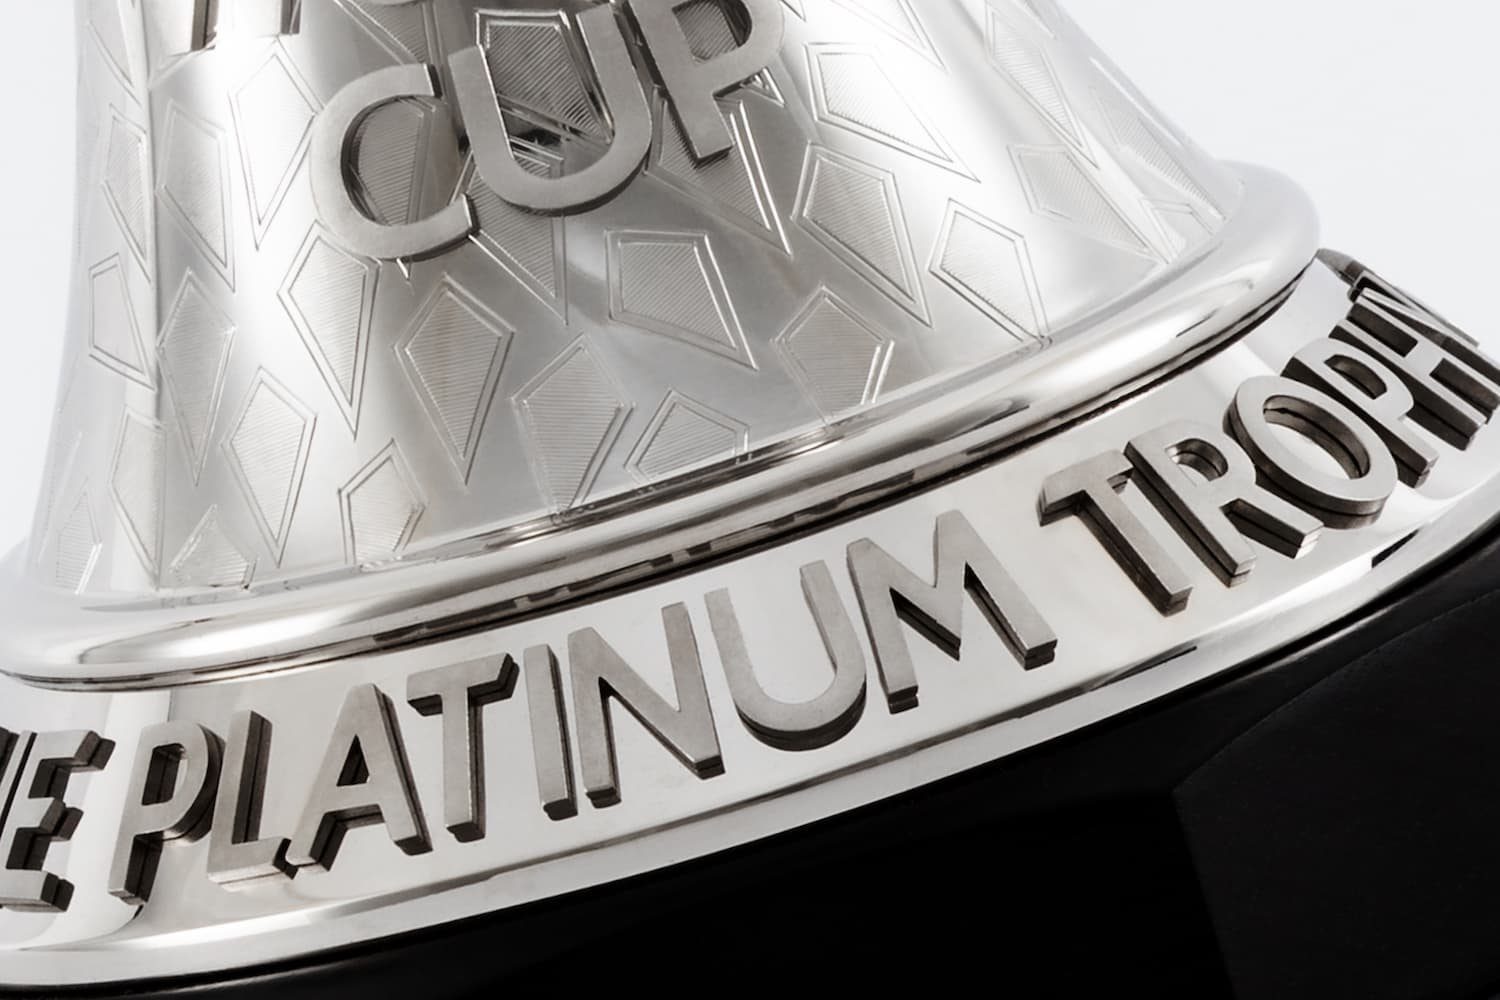 Close up of the lettering on the trophy